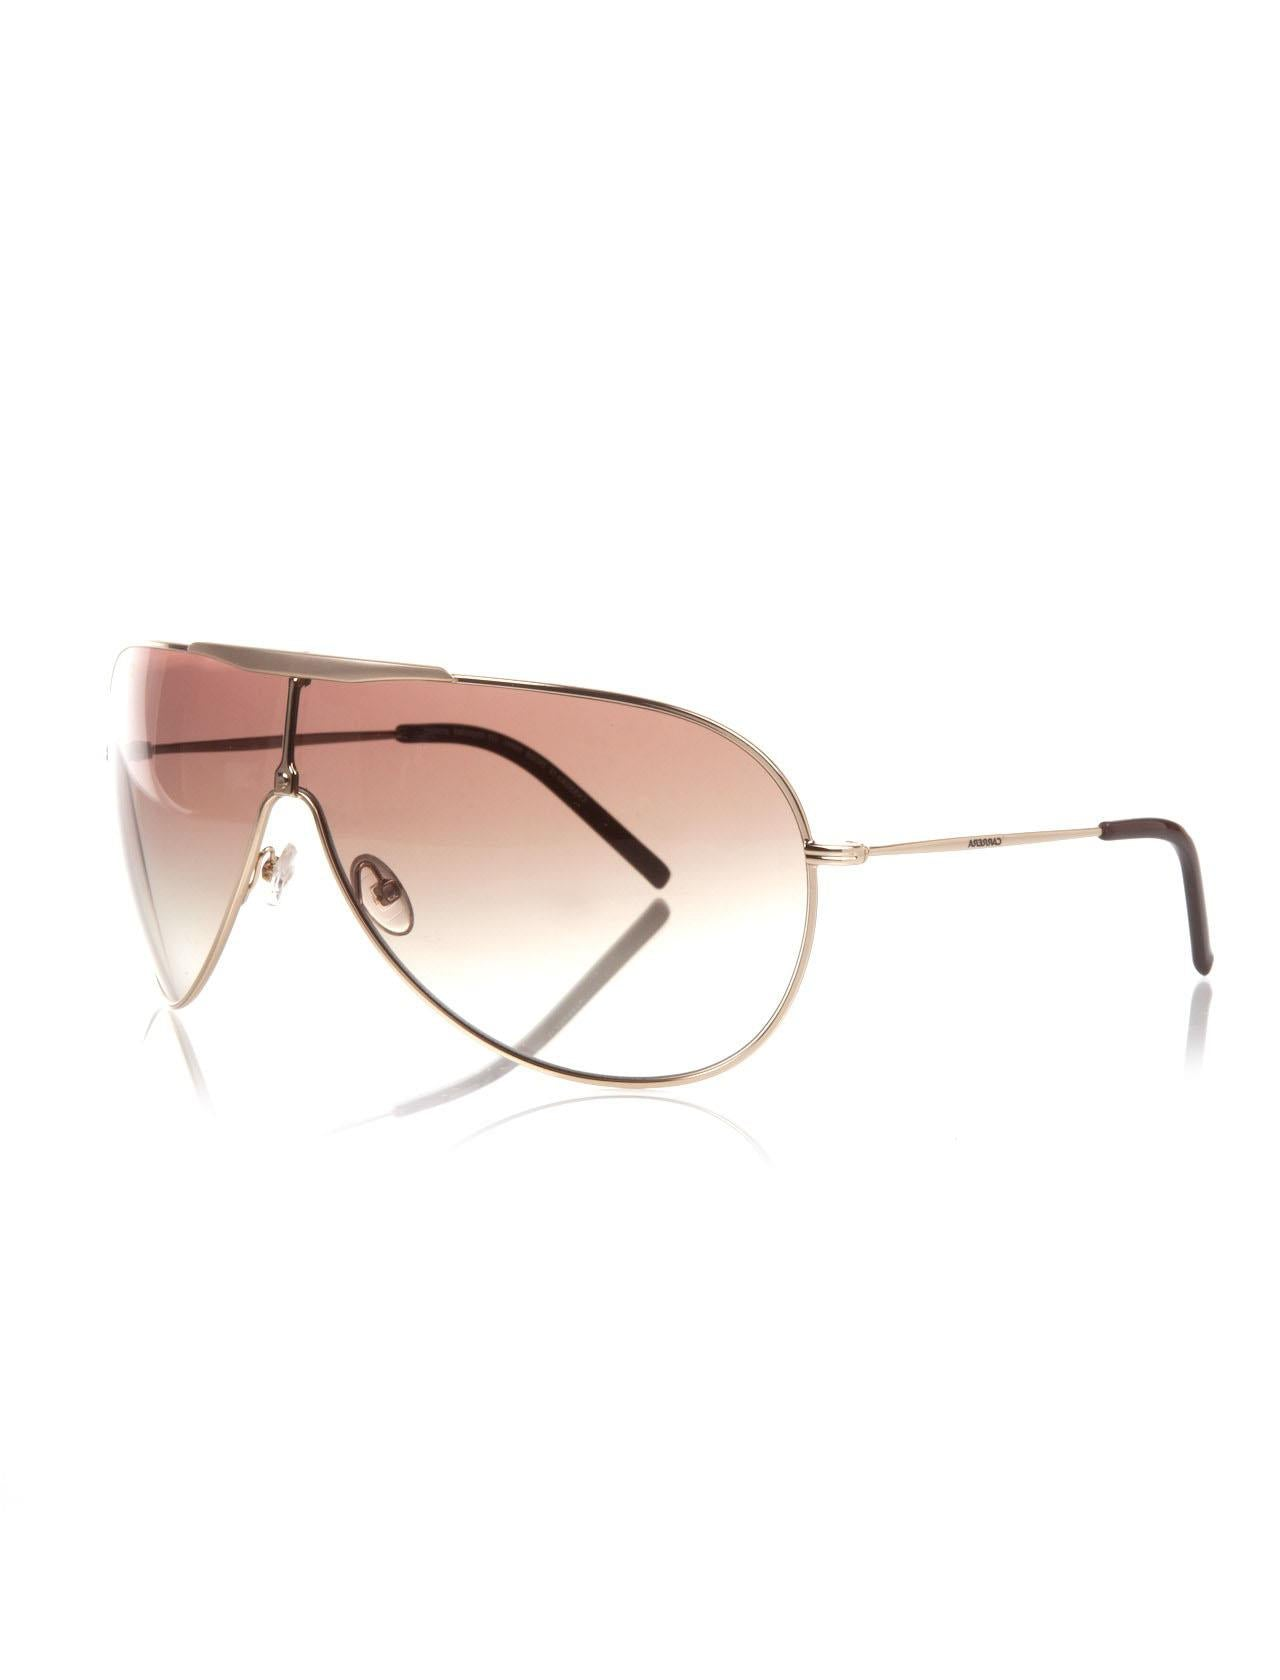 Unisex Trendy Design Sunglasses